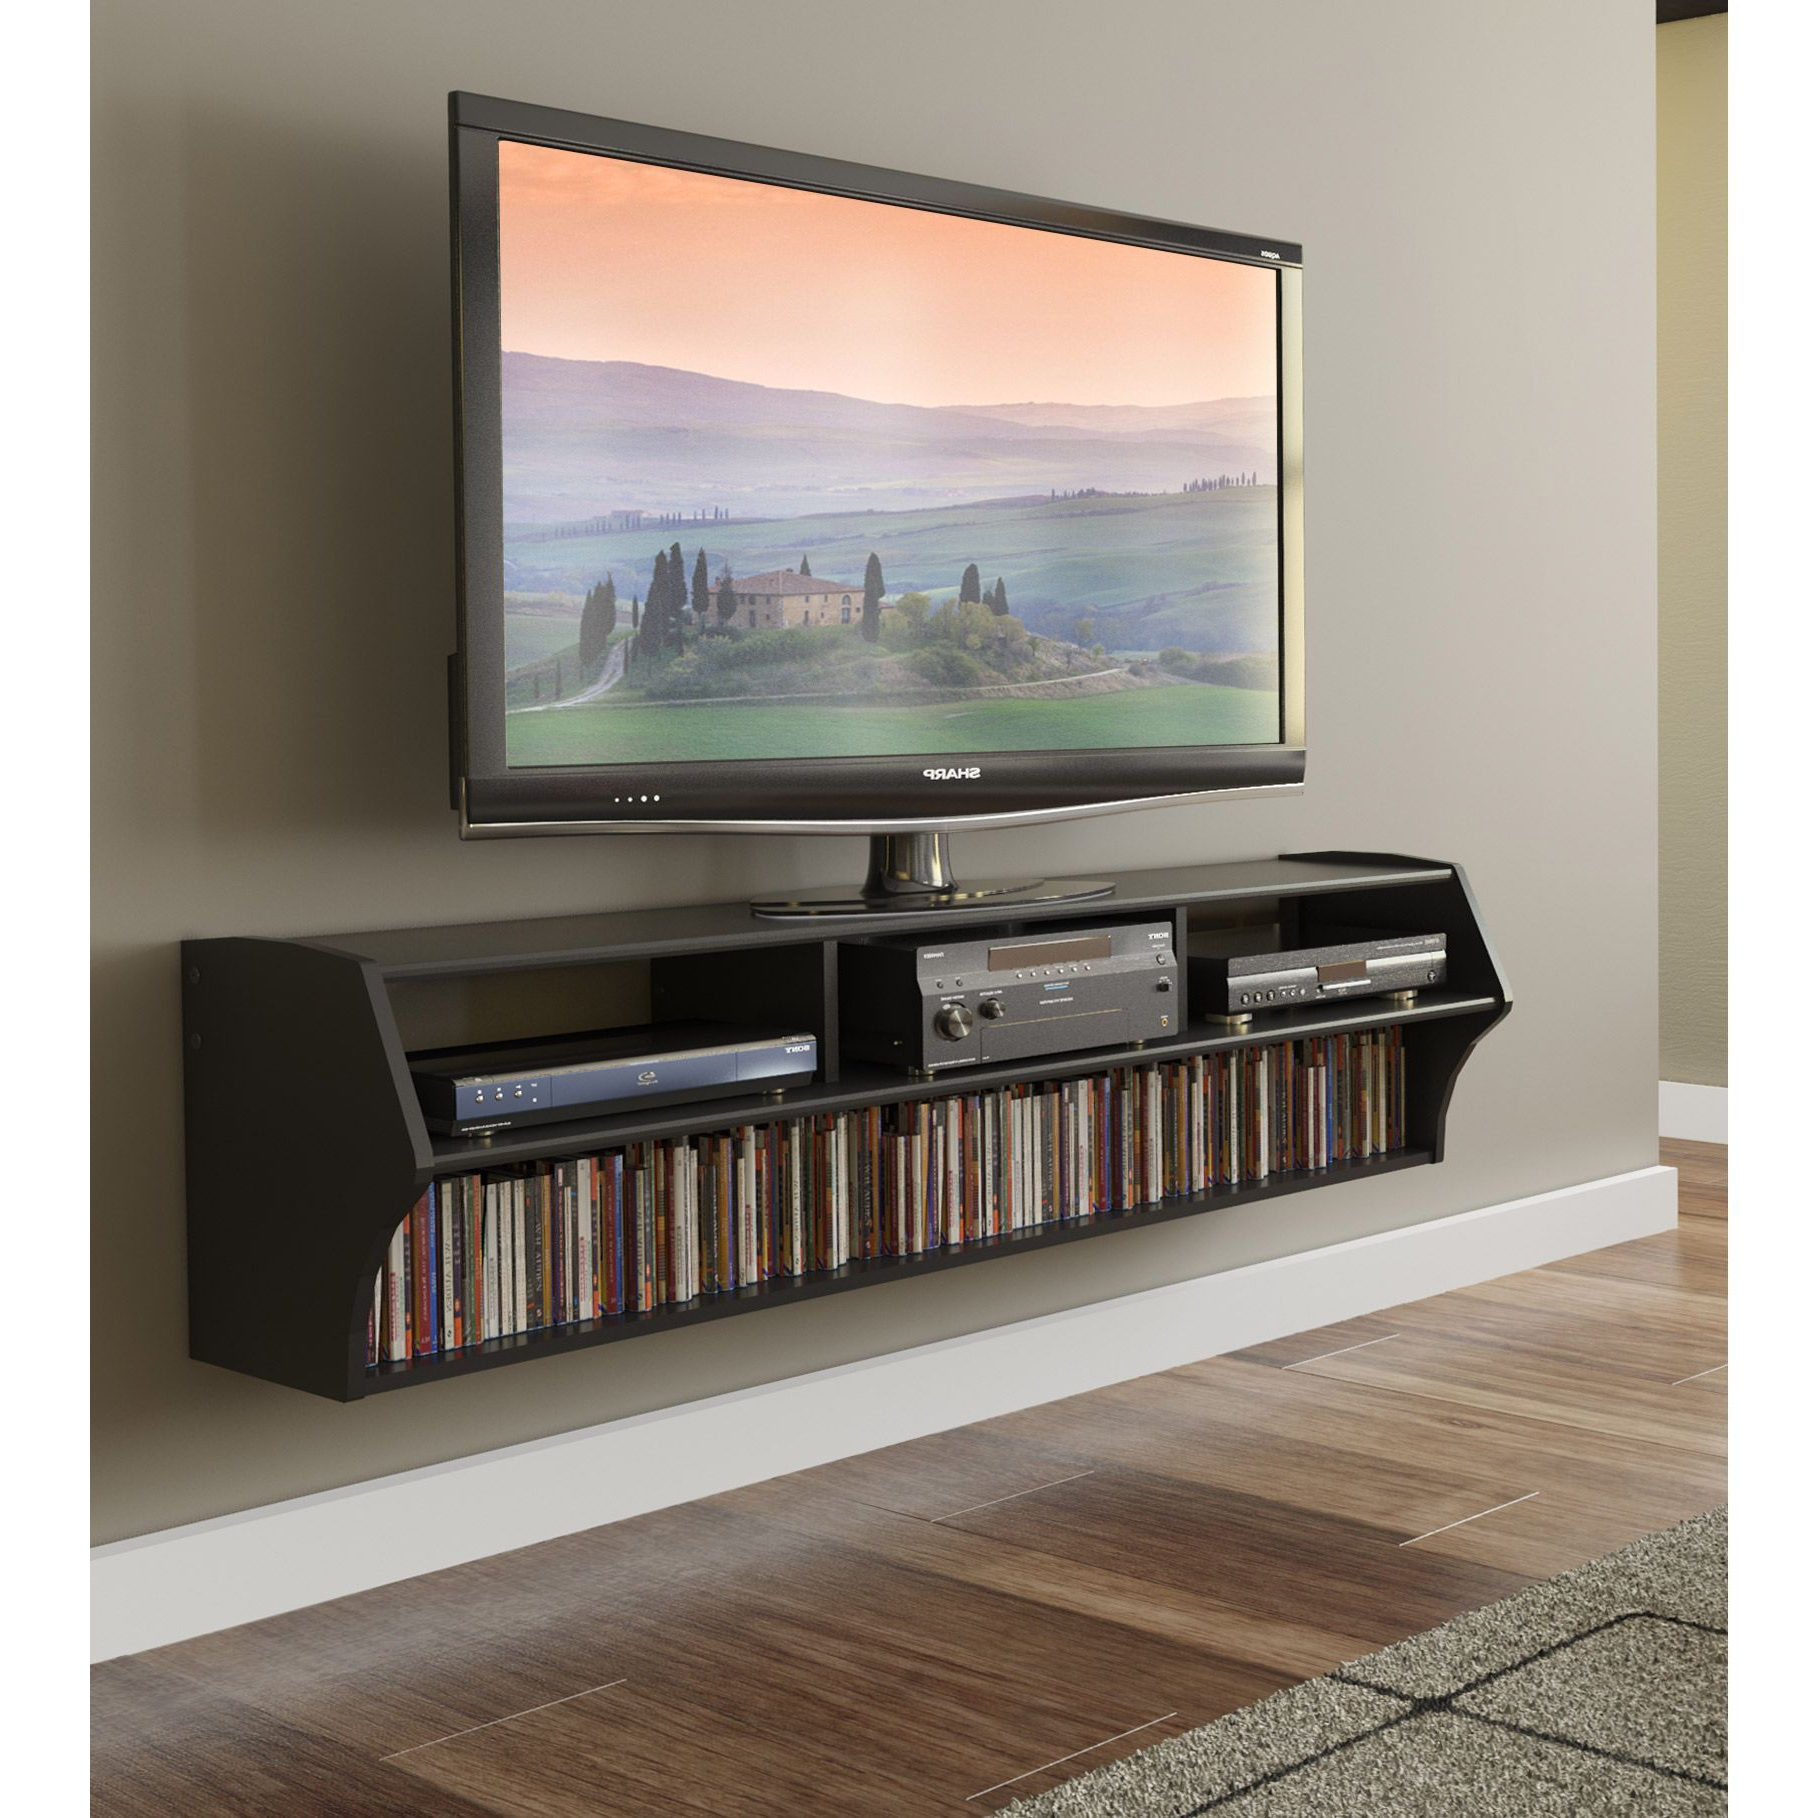 Tv Stands For Small Spaces Within Well Known An Elegant Way To Display Your Television, This Modern Floating Tv (View 5 of 20)